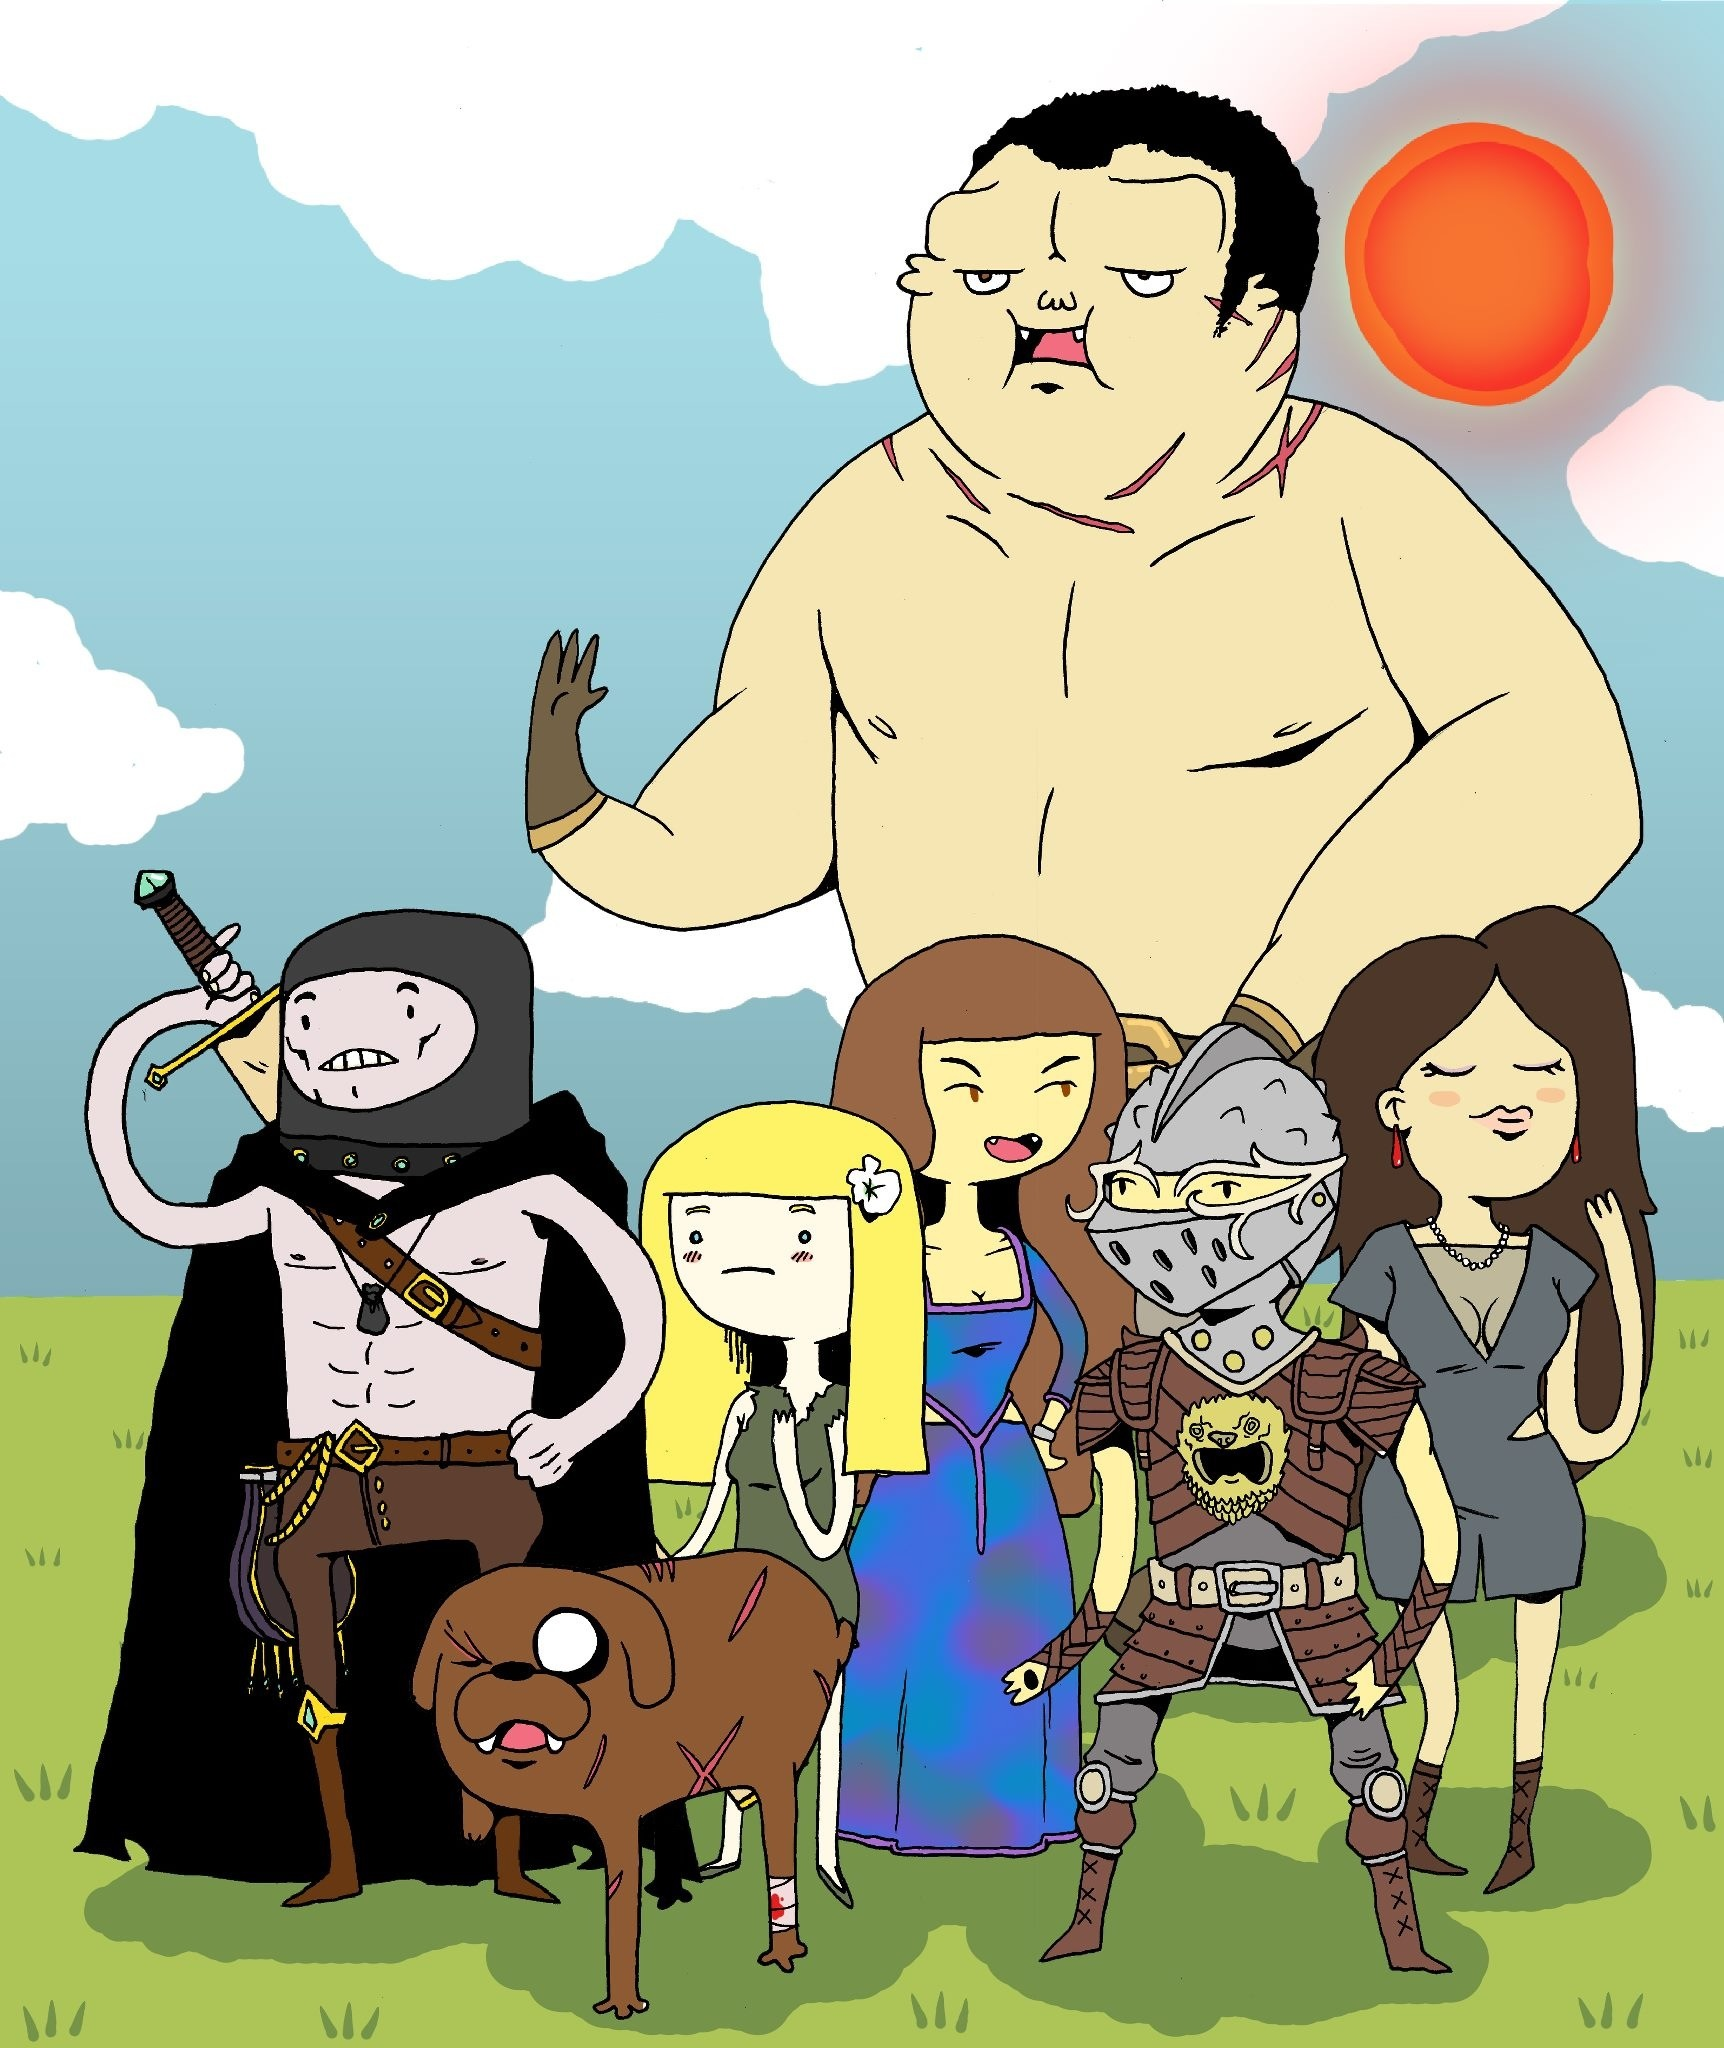 A cartoon of several characters from 'The Book of the New Sun', drawn in the style of 'Adventure Time'.